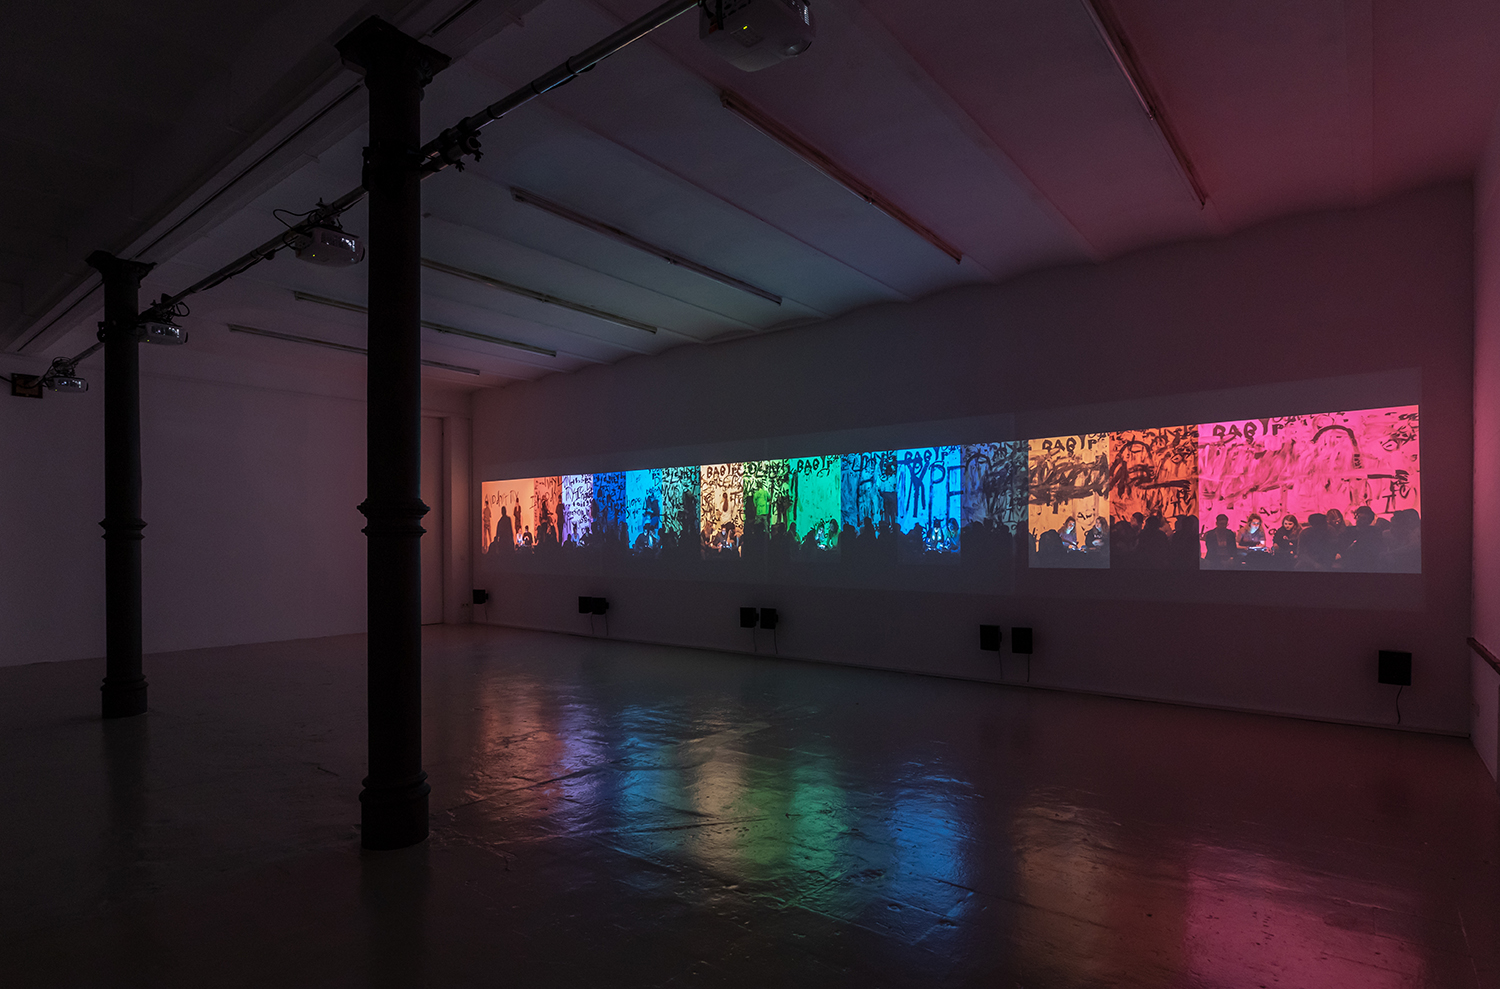 Installation view Annika Kahrs NO LONGER NOT YET Produzentengalerie Hamburg, 2019 Photo: Helge Mundt Courtesy the artist and Produzentengalerie Hamburg (Annika Kahrs 7)